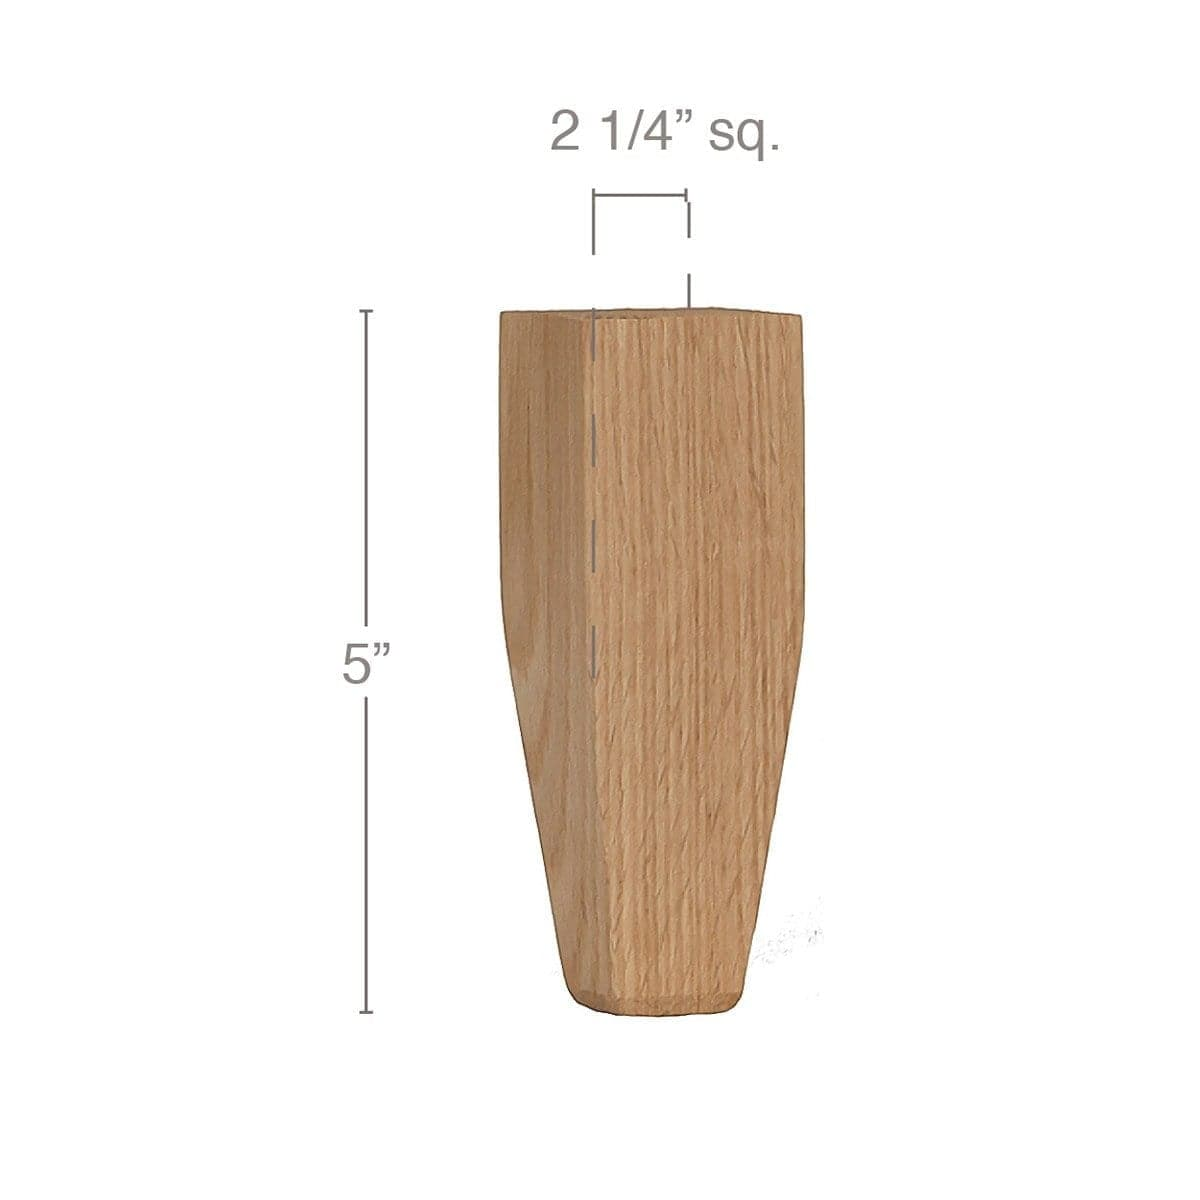 "Shaker Tall Tapered Square Bun Foot, 2 1/4""sq. x 5""h"